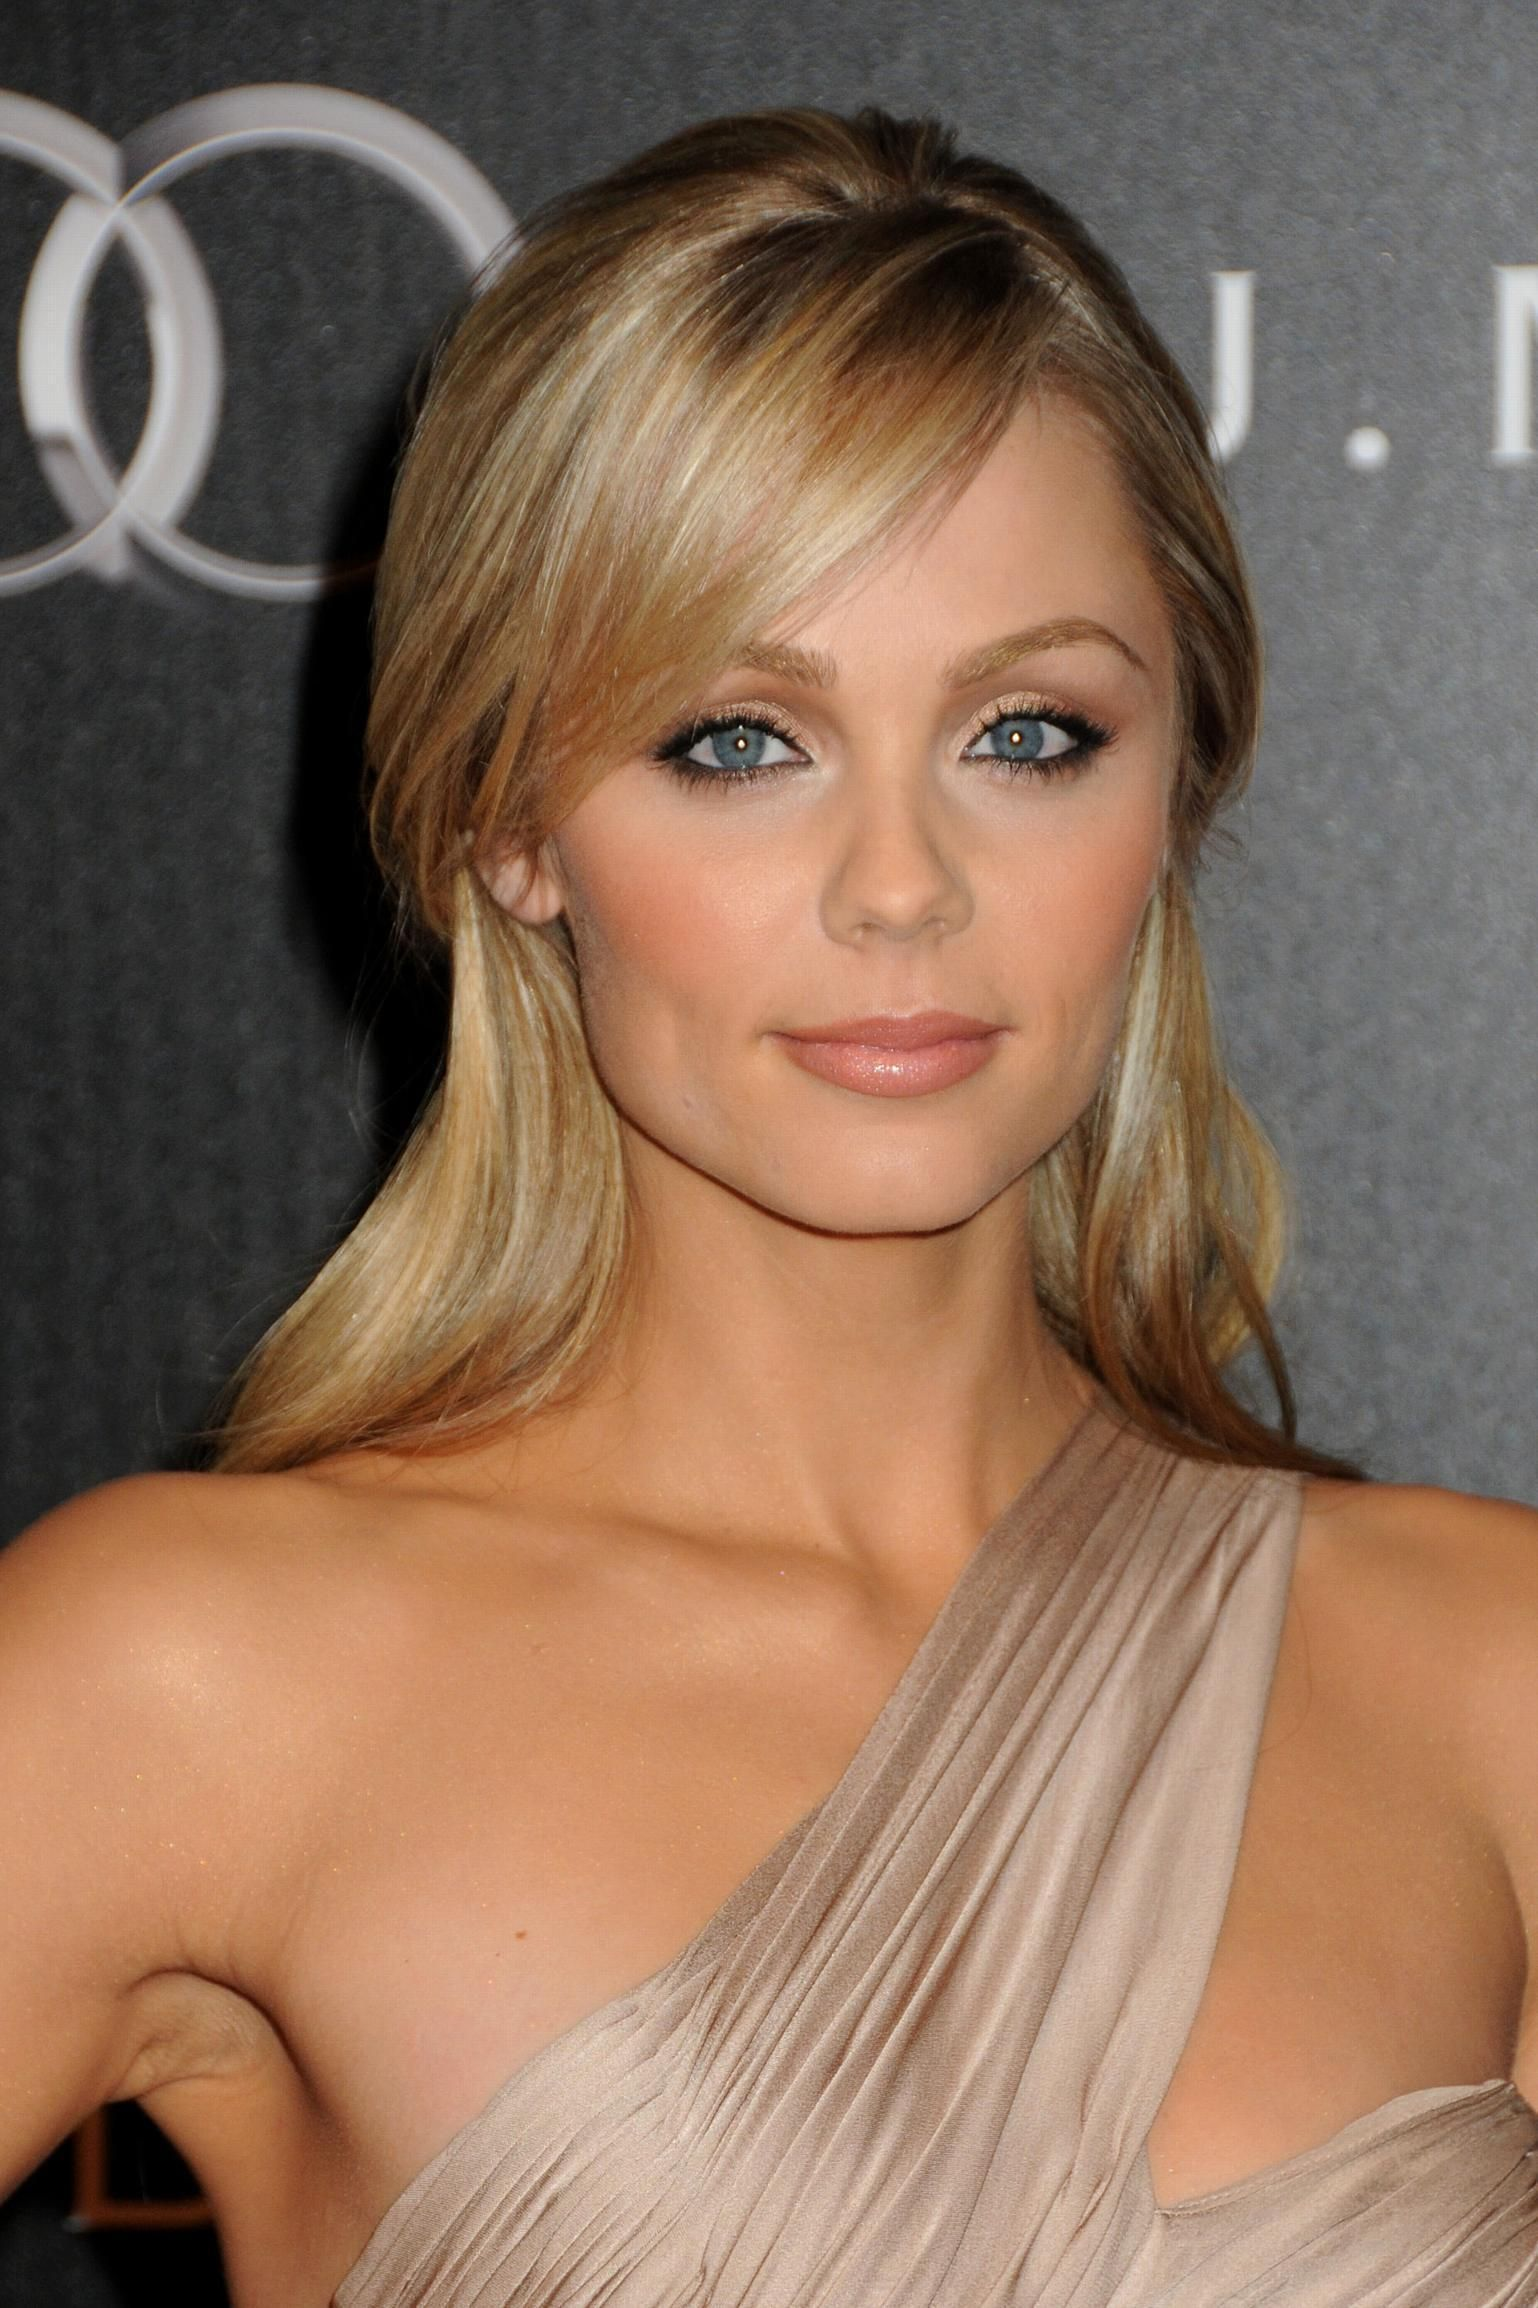 Laura vandervoort laura vandervoort celebrity and actresses